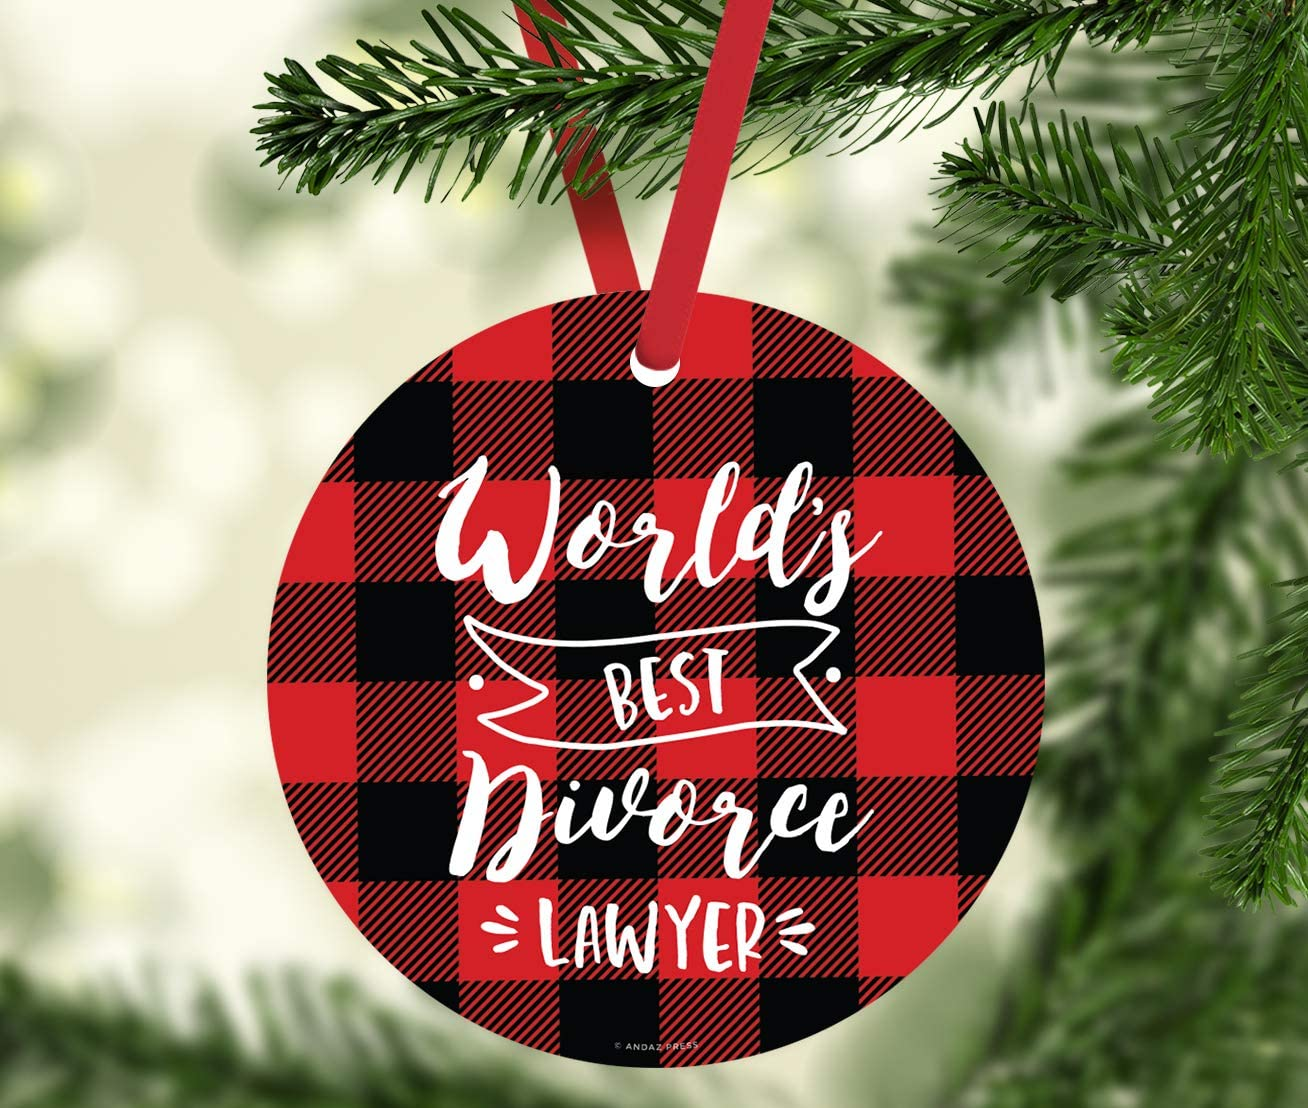 Amazon Com Andaz Press Round Mdf Natural Wood Christmas Tree Ornament Funny Divorce Gift World S Best Divorce Lawyer 1 Pack Divorced Friend Gift Ideas Kitchen Dining